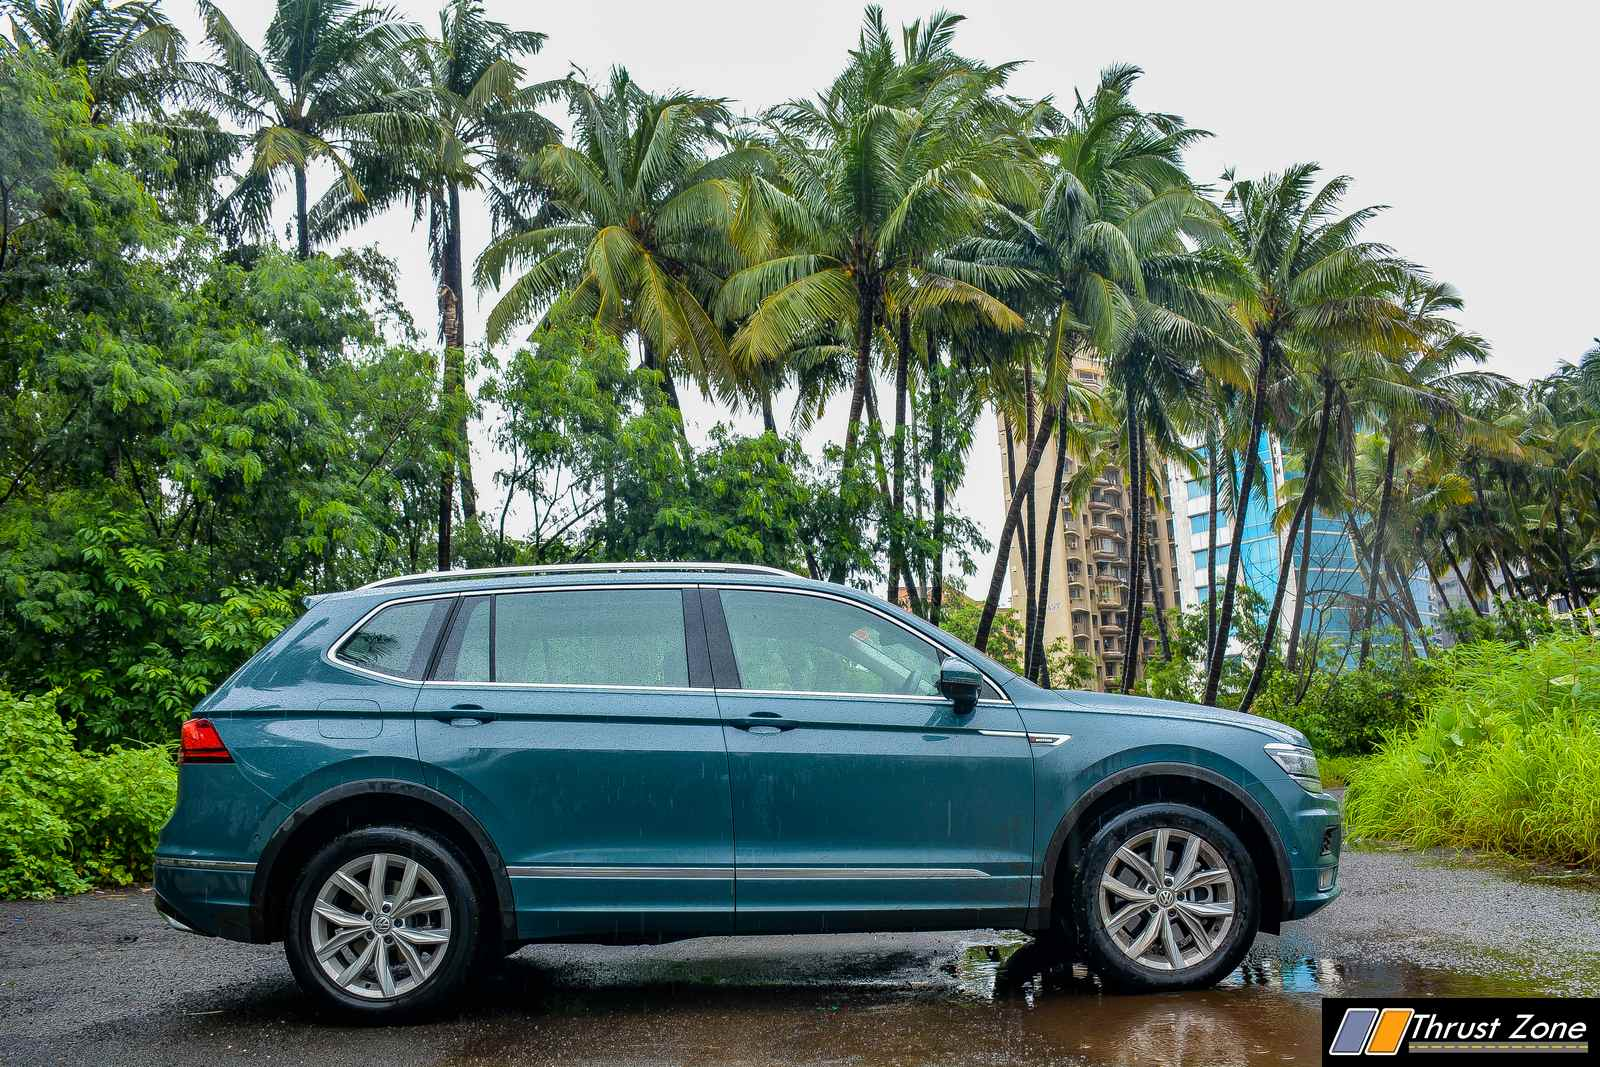 2020-VW-Tiguan-All-Space-India-Review-15